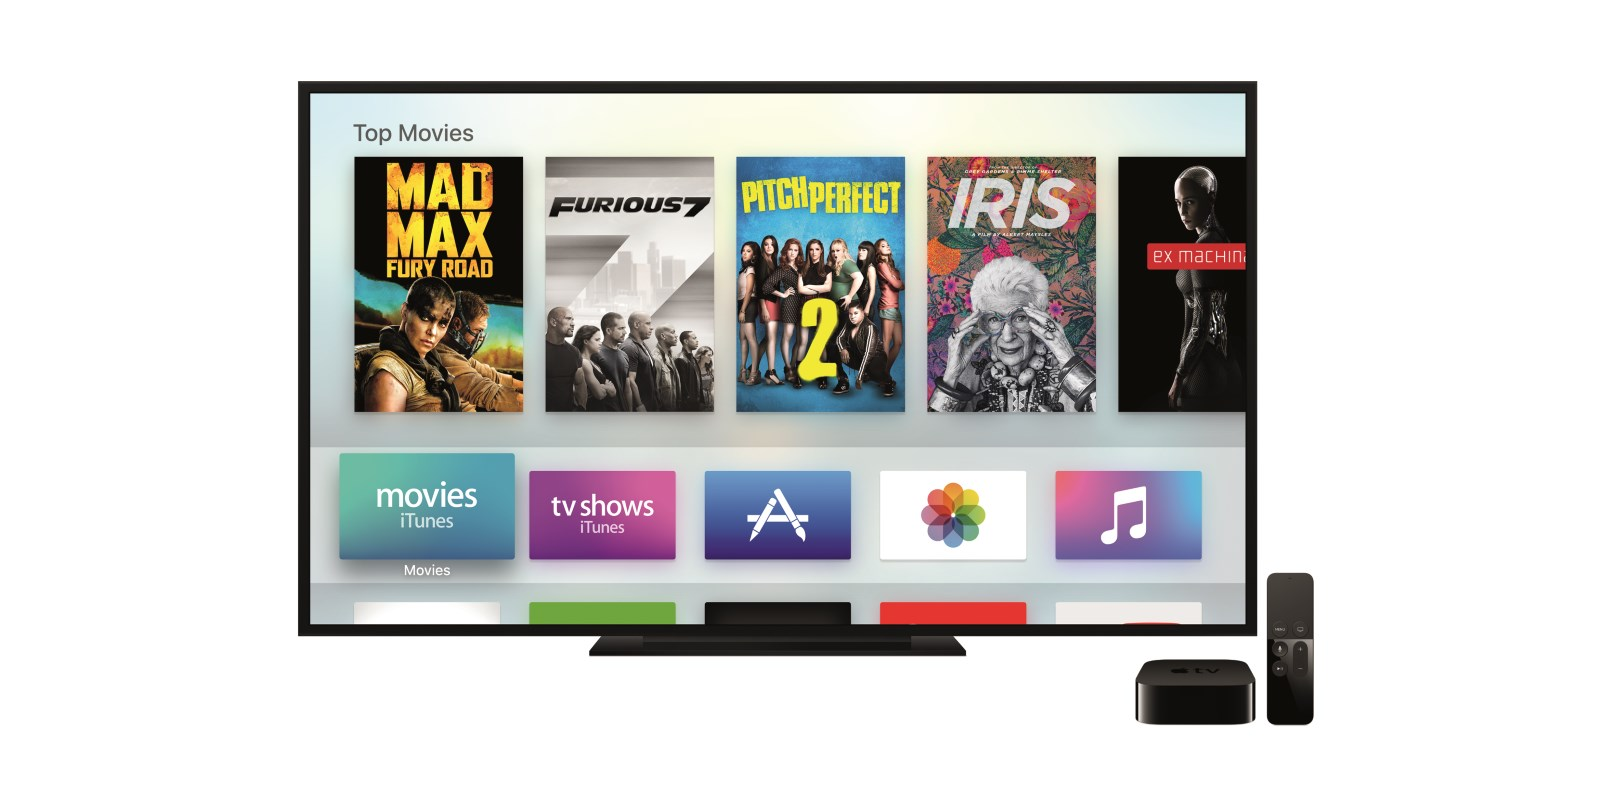 It's hard to build Apple TV apps and that's good for users